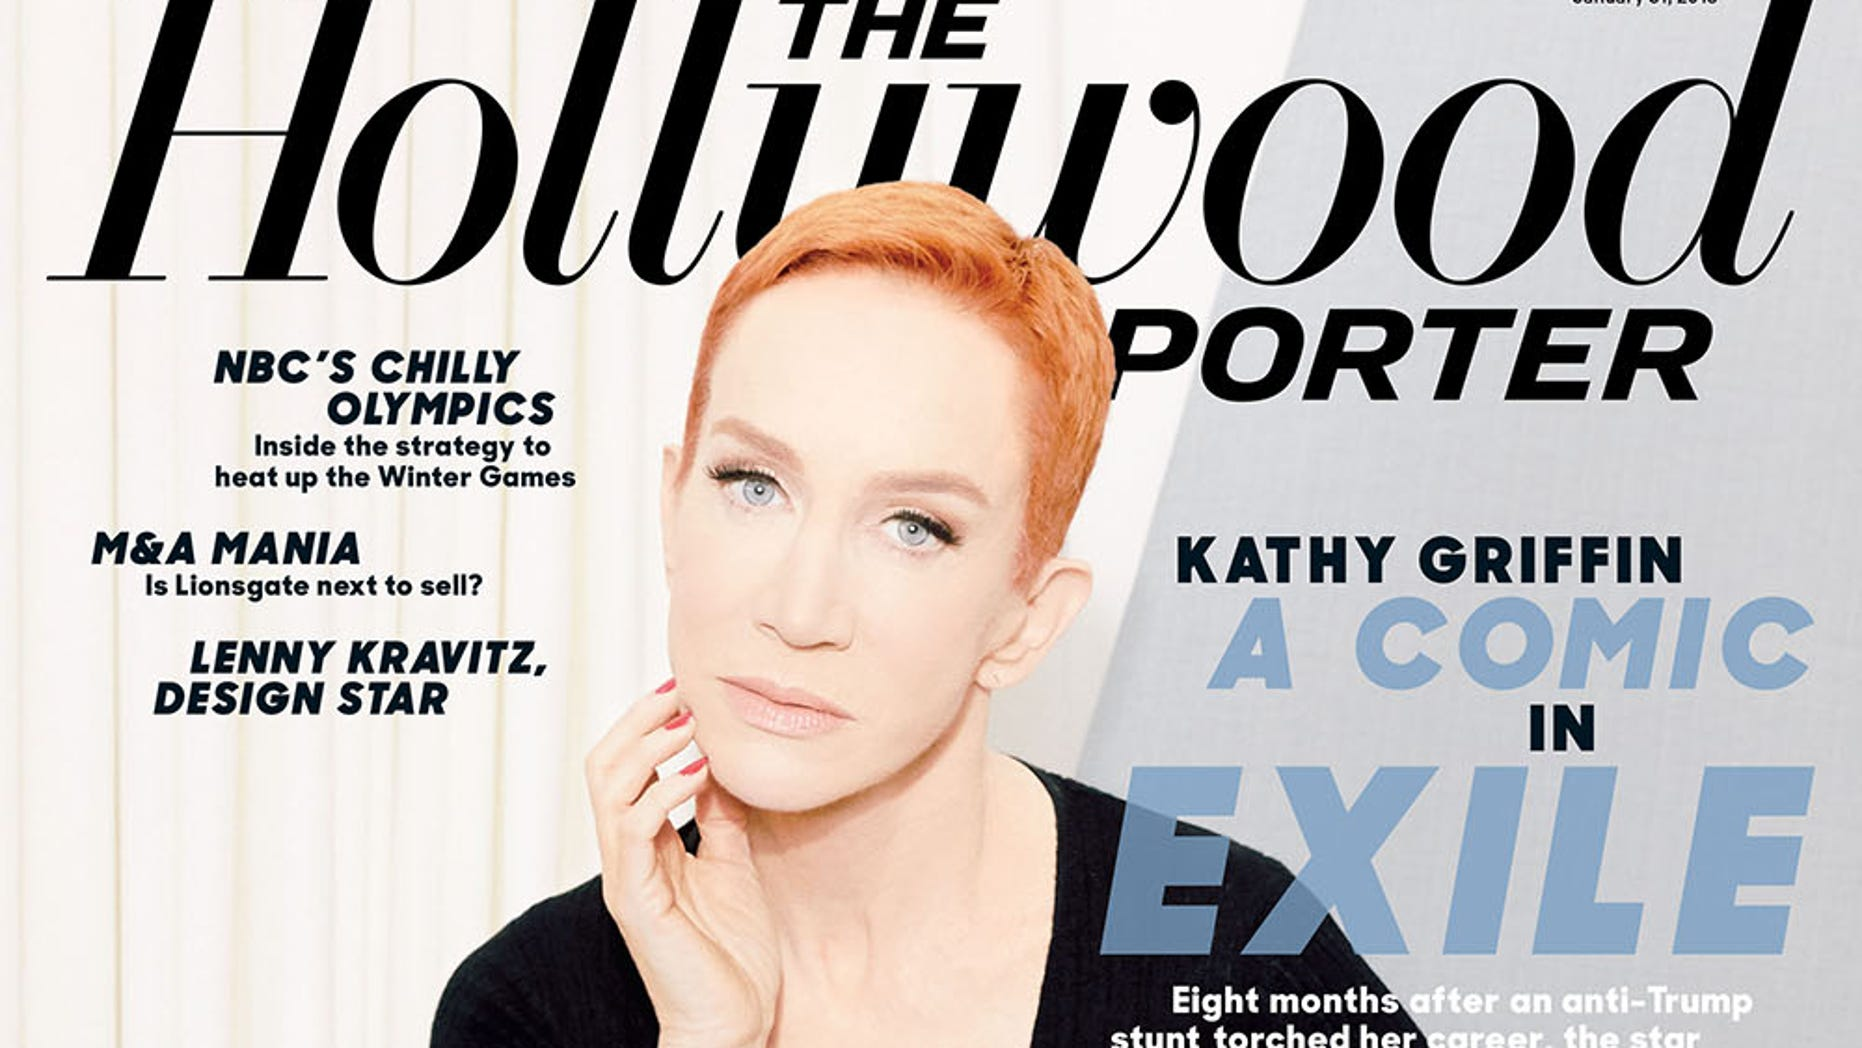 Kathy Griffin tells all to The Hollywood Reporter in its latest issue.